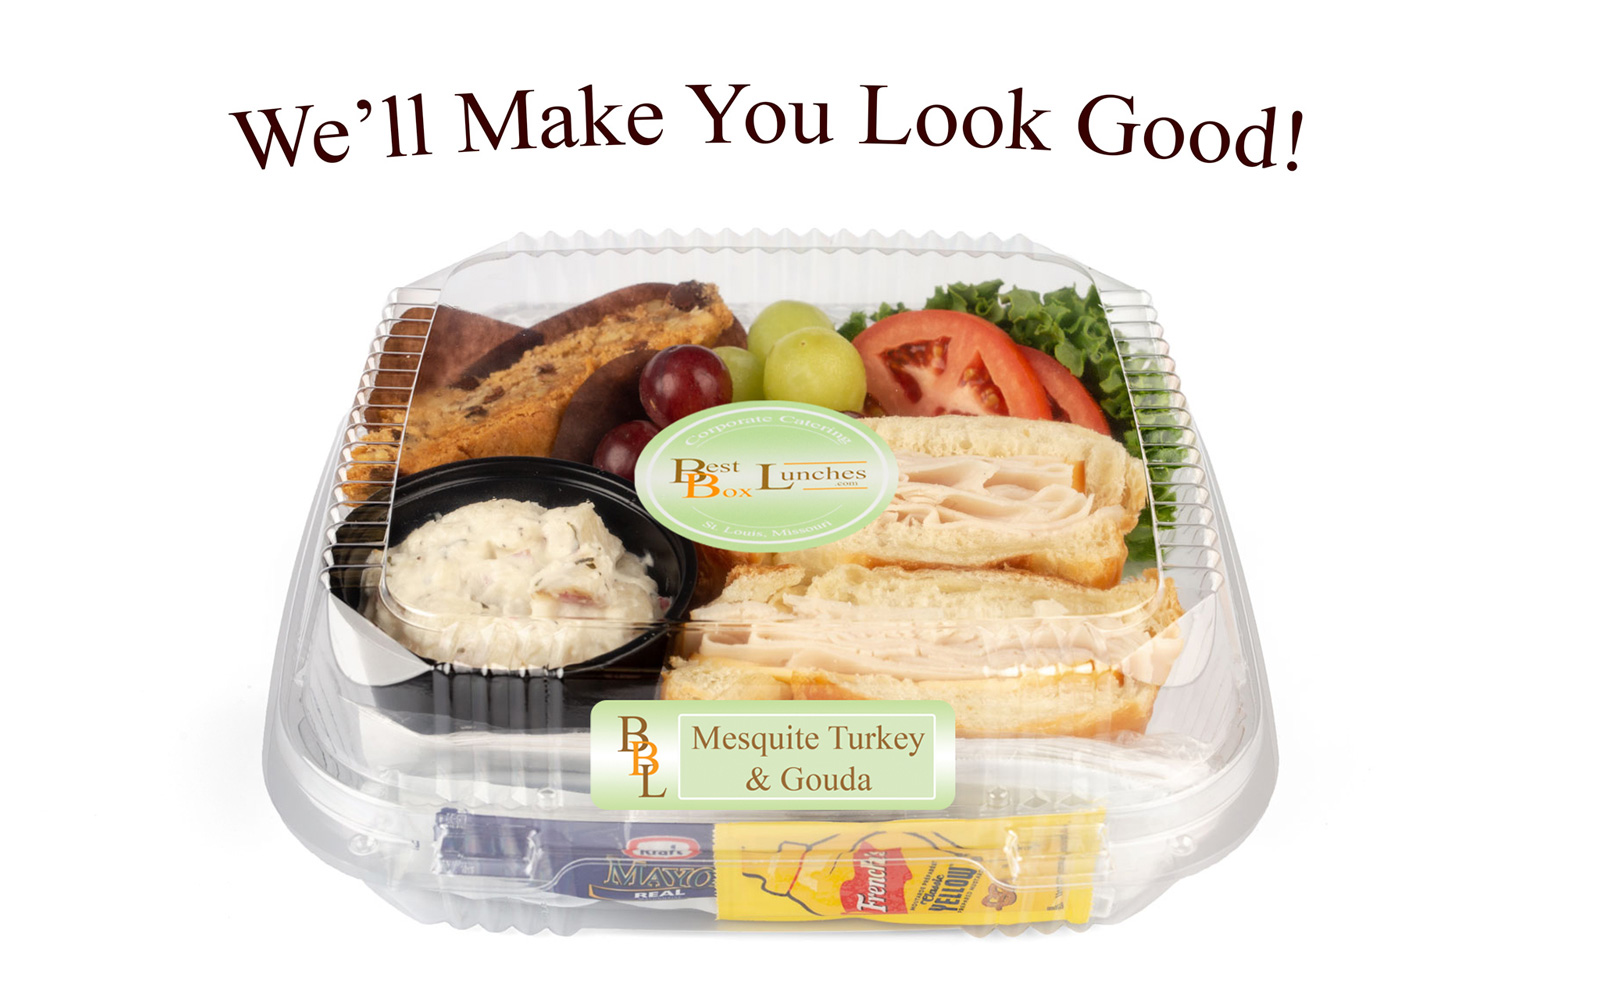 Lunch In A Box Best Box Lunches St Louis Ontime Lunch Catering With No Mistakes